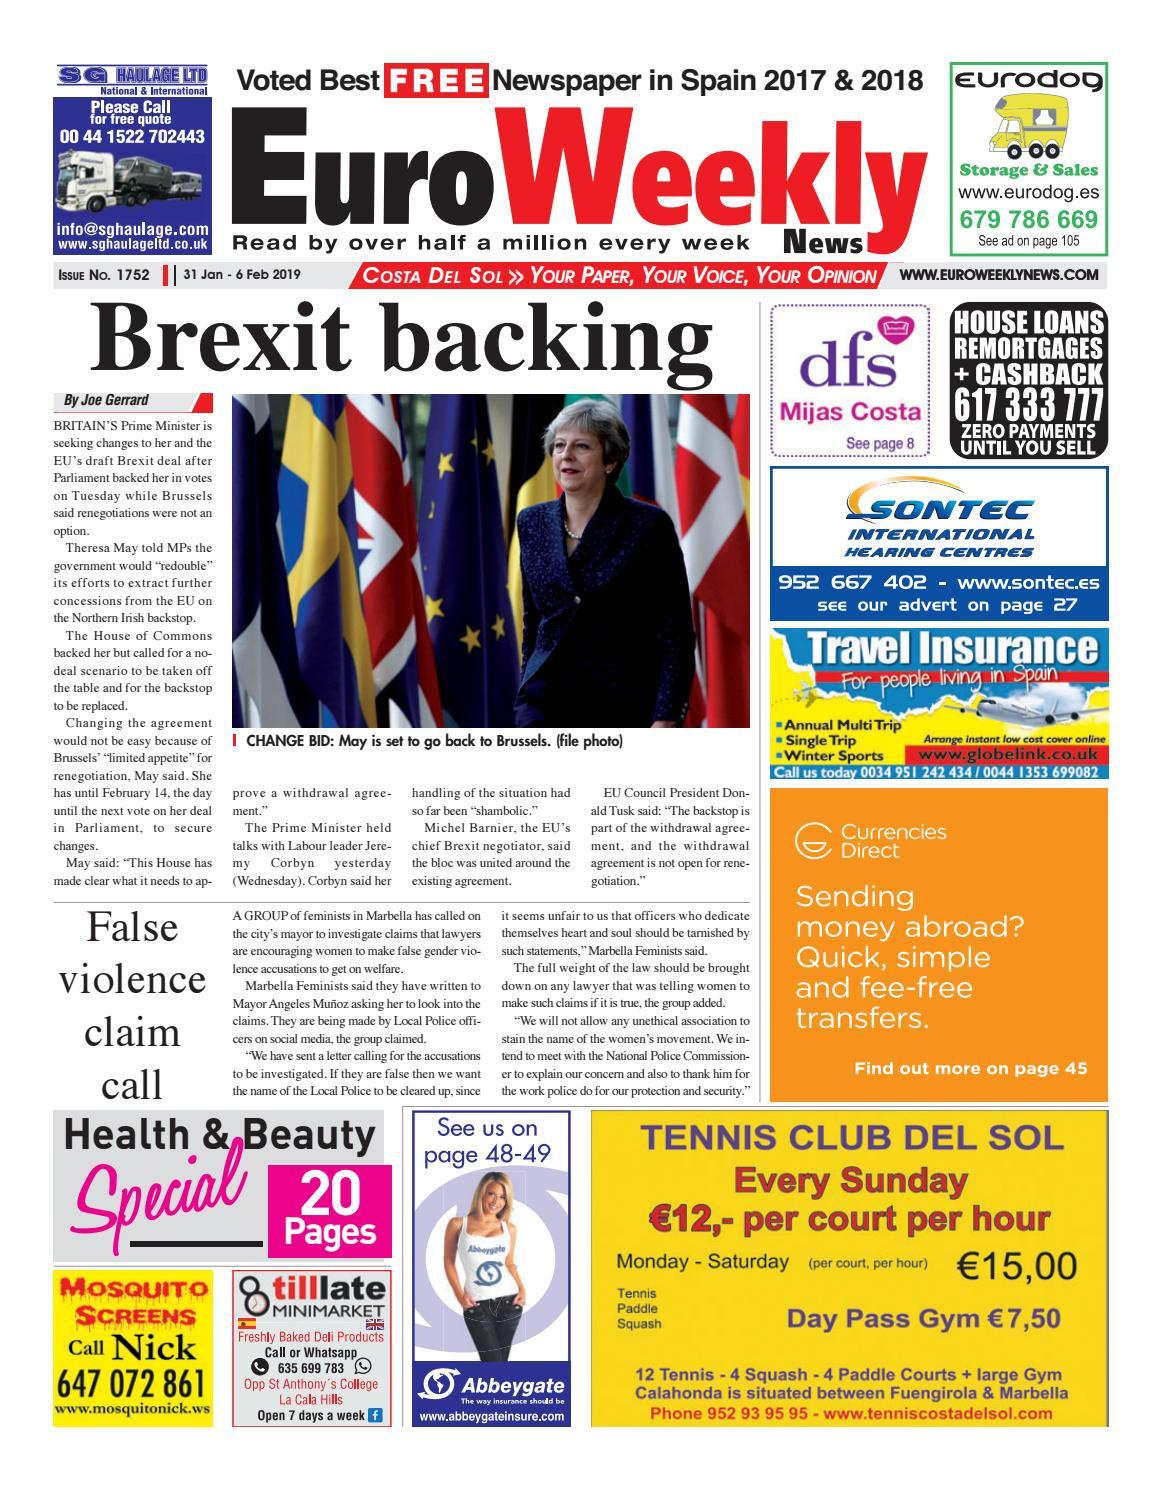 5d7bad3d2998 Euro Weekly News - Costa del Sol 31 Jan - 6 Feb 2019 Issue 1752 by Euro  Weekly News Media S.A. - issuu